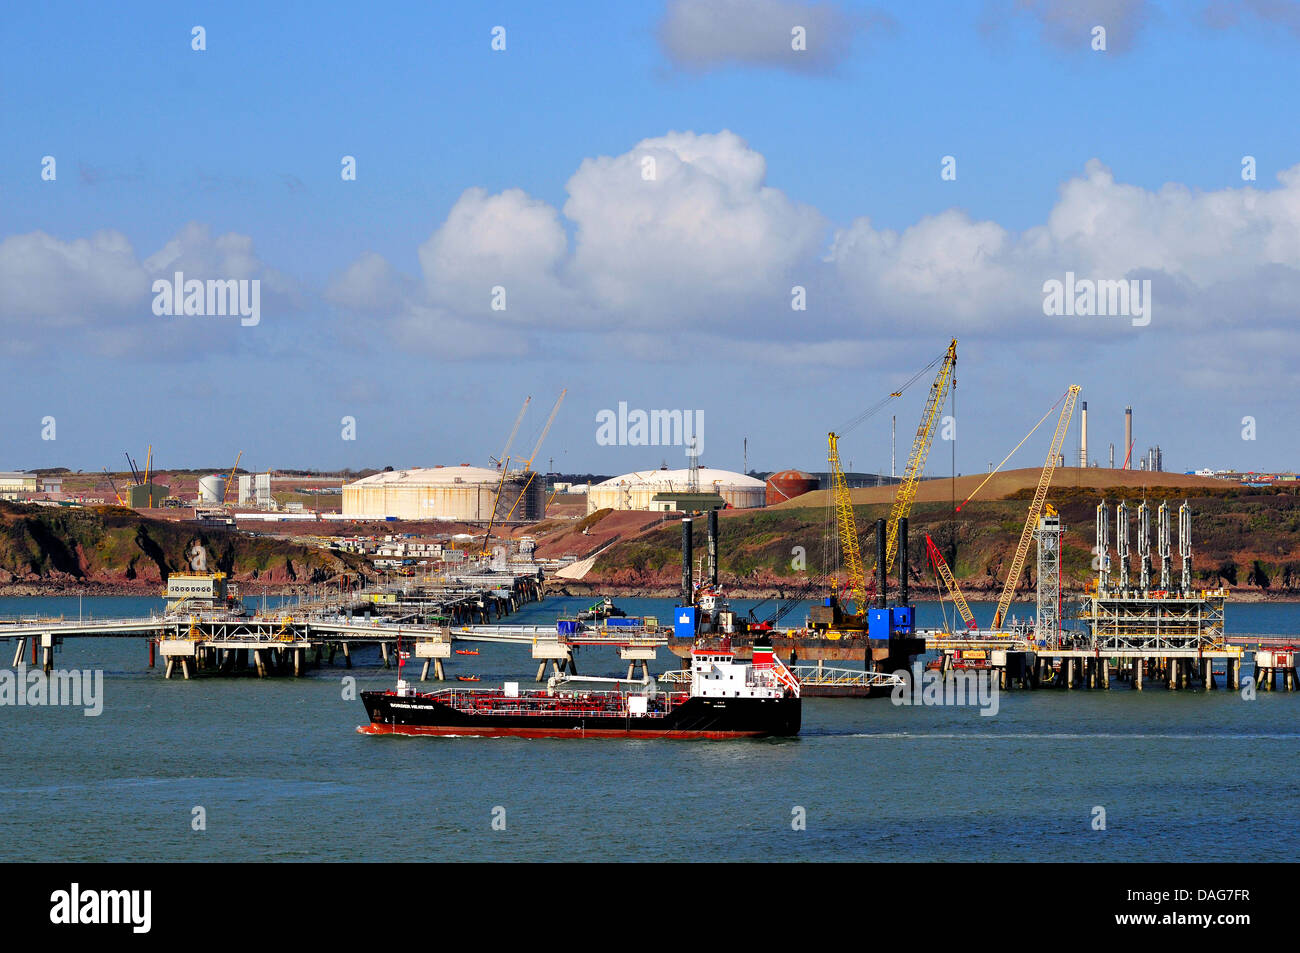 sea jetty at the harbour of a gas terminal, United Kingdom, Wales Stock Photo